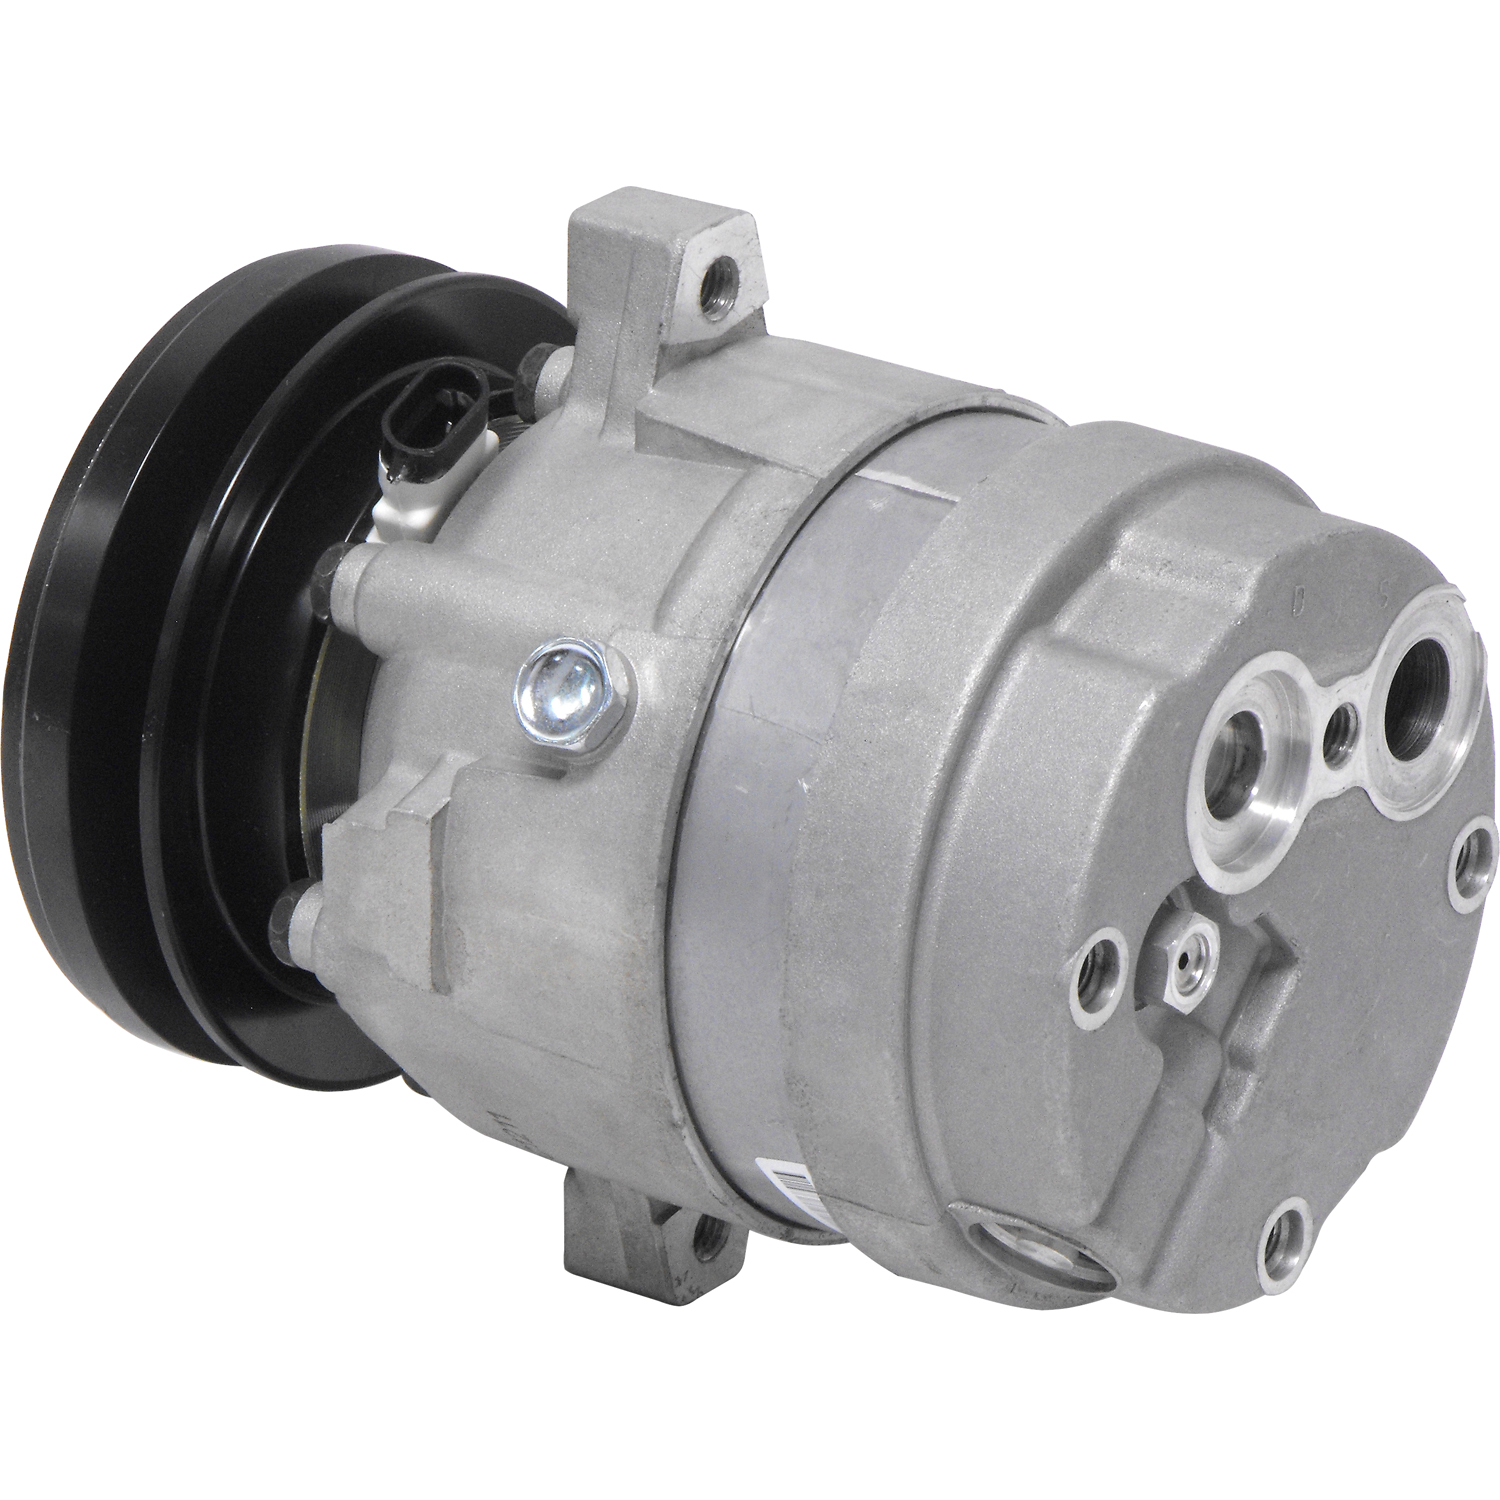 CO 20191C V5 Compressor Assembly